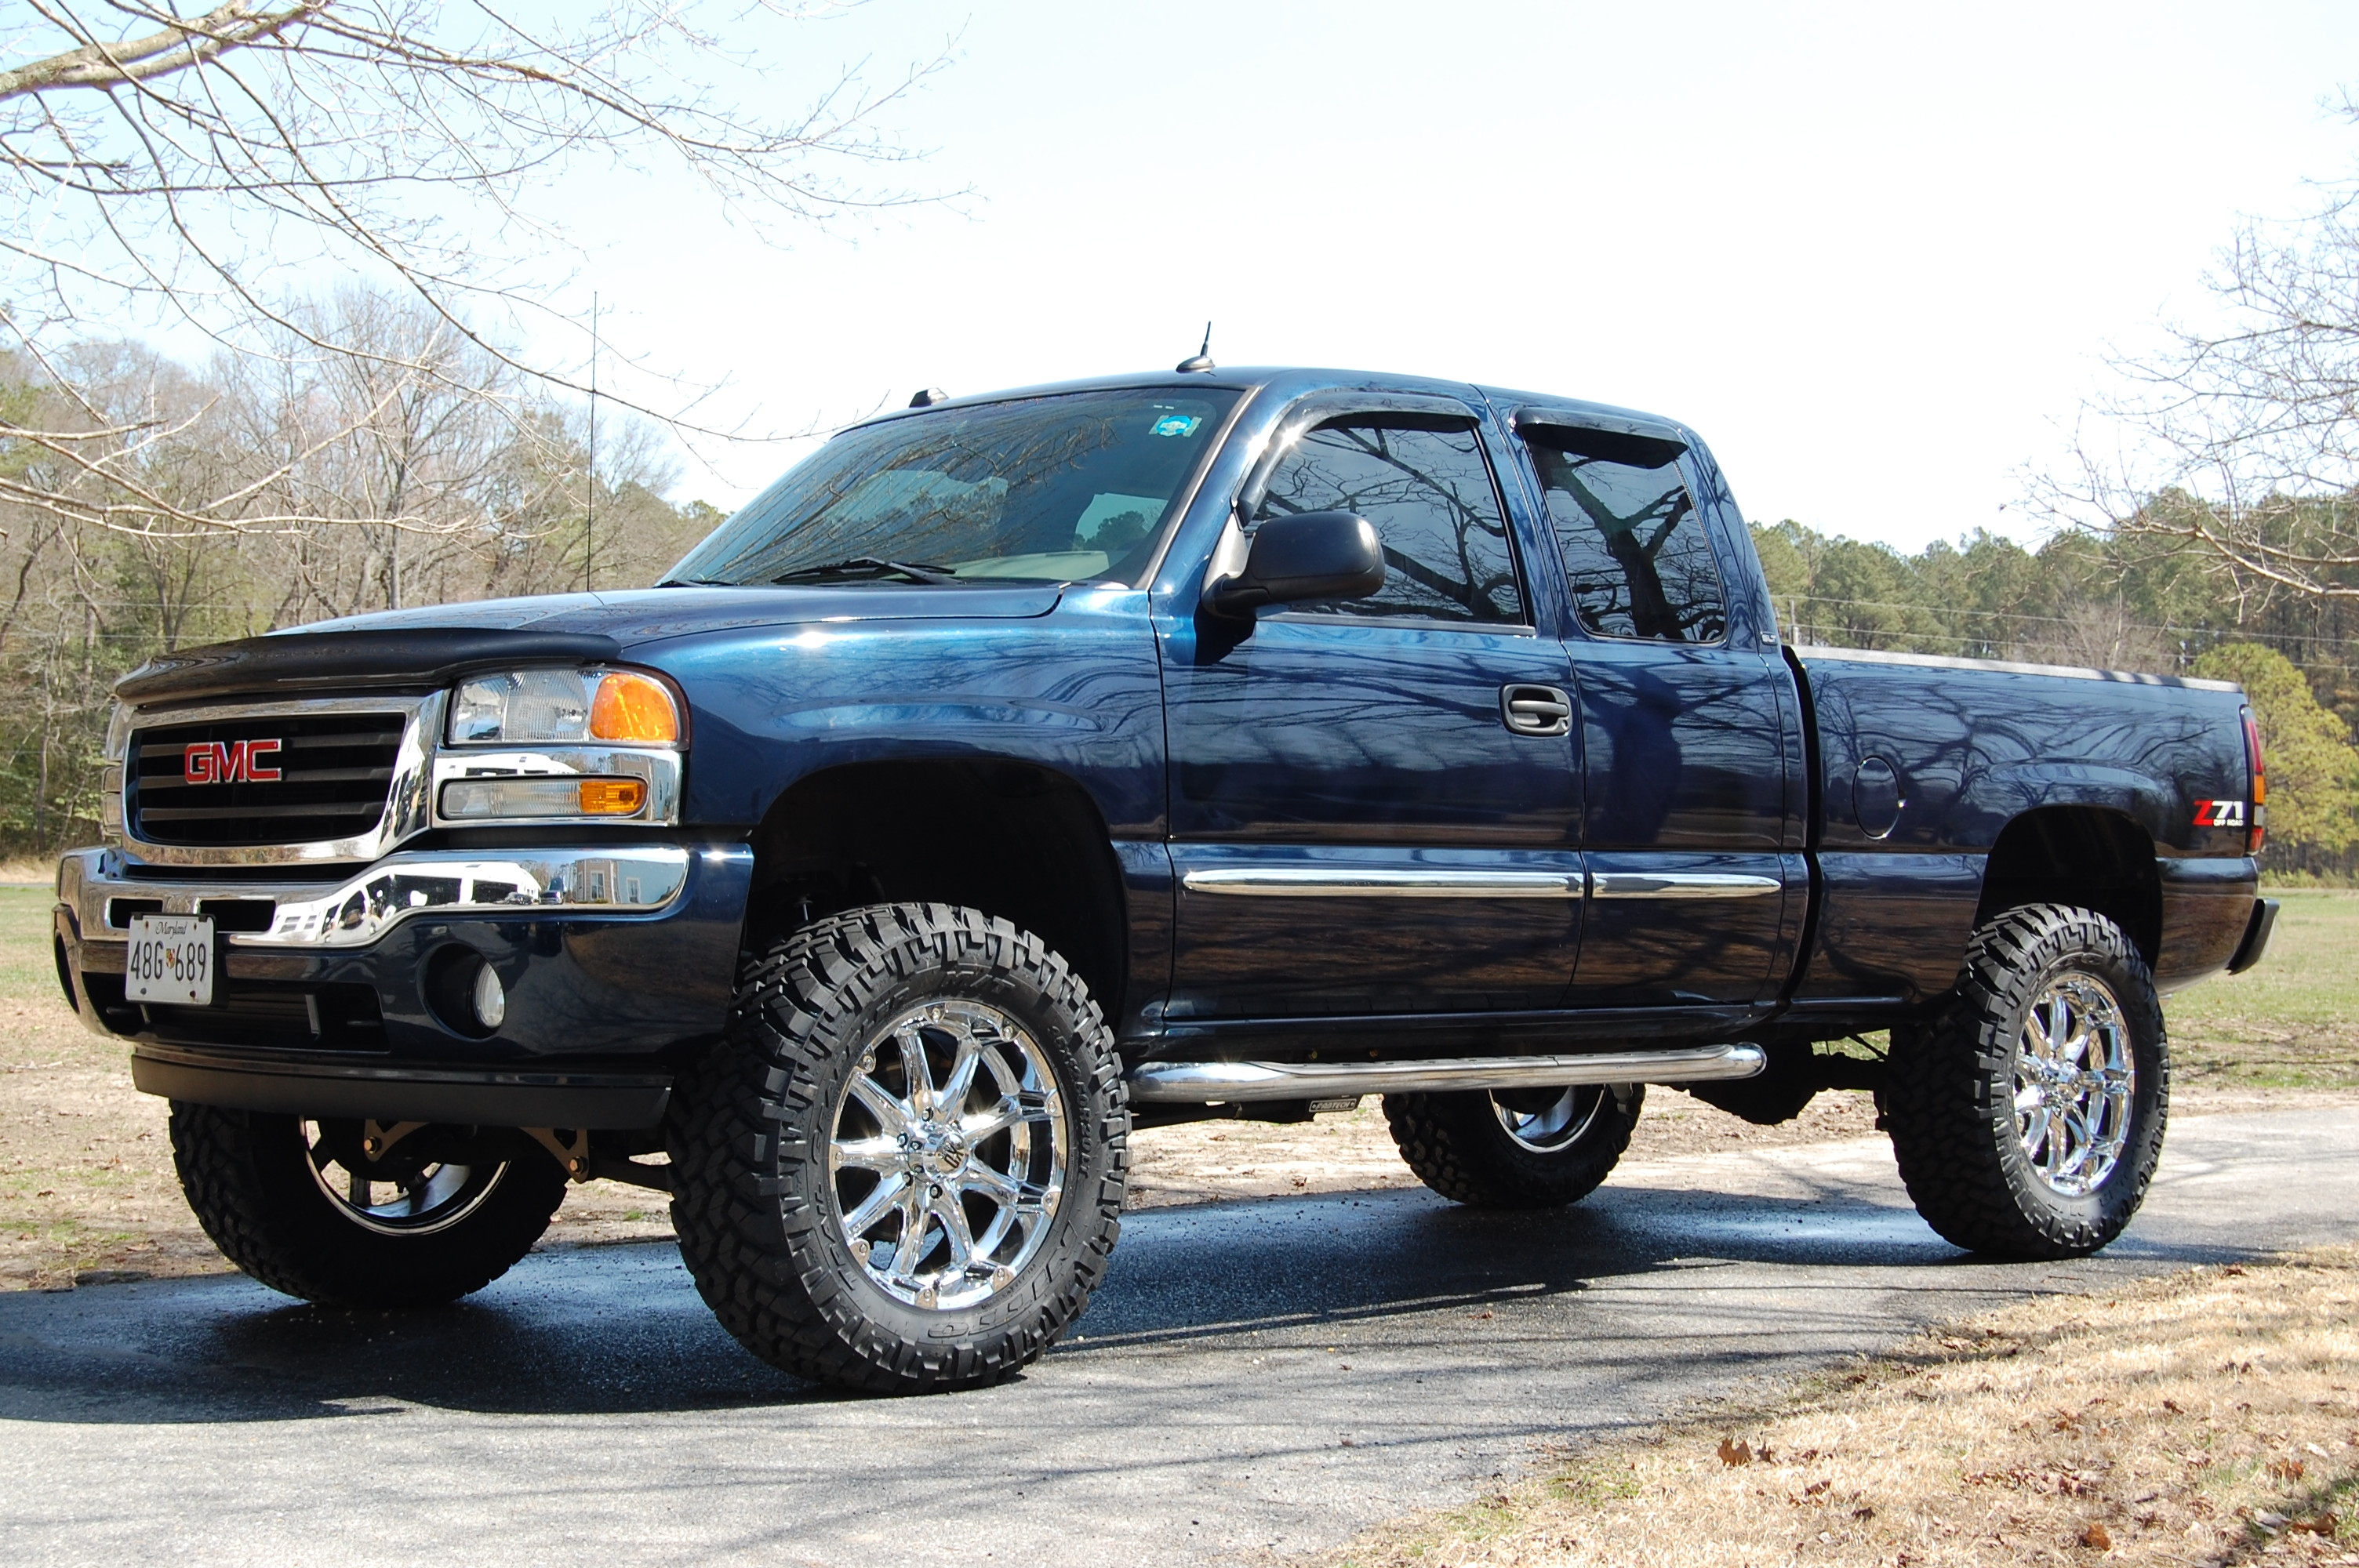 2000 Chevy Silverado 2500 4x4 2005 GMC Sierra 1500 - Information and photos - ZombieDrive